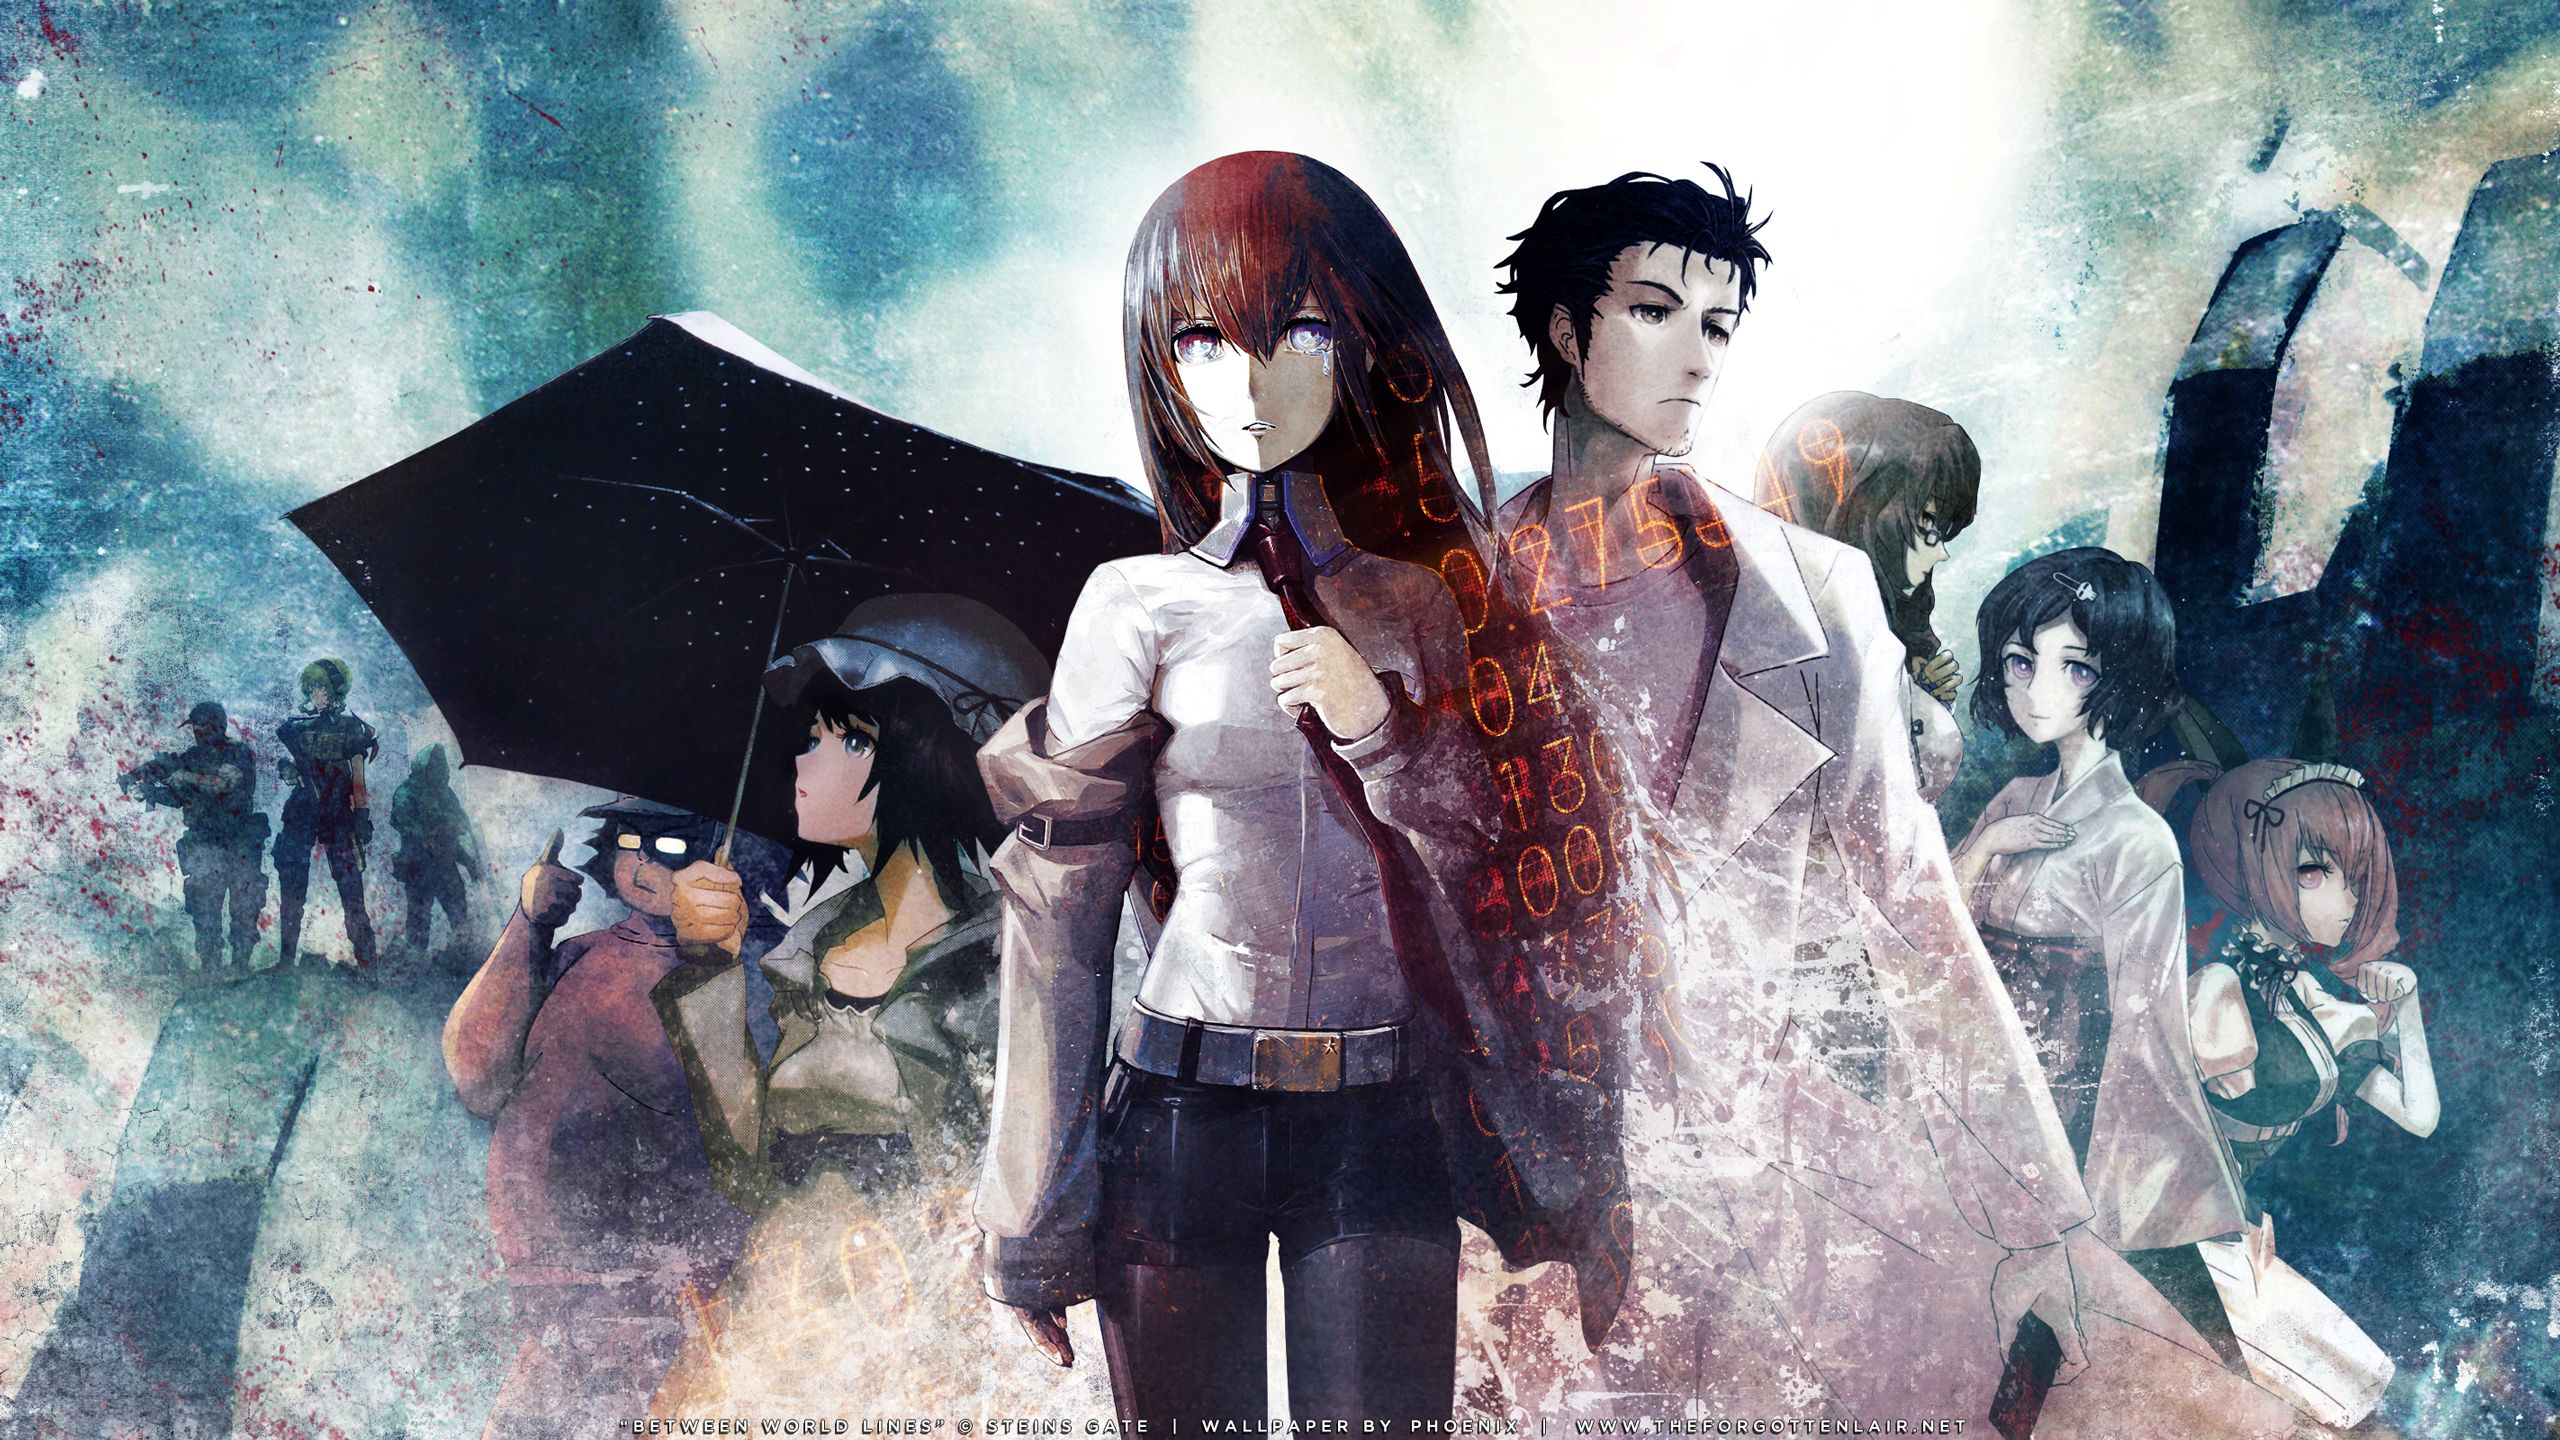 Image Result For Steins Gate Wallpaper El Psy Congroo Steins